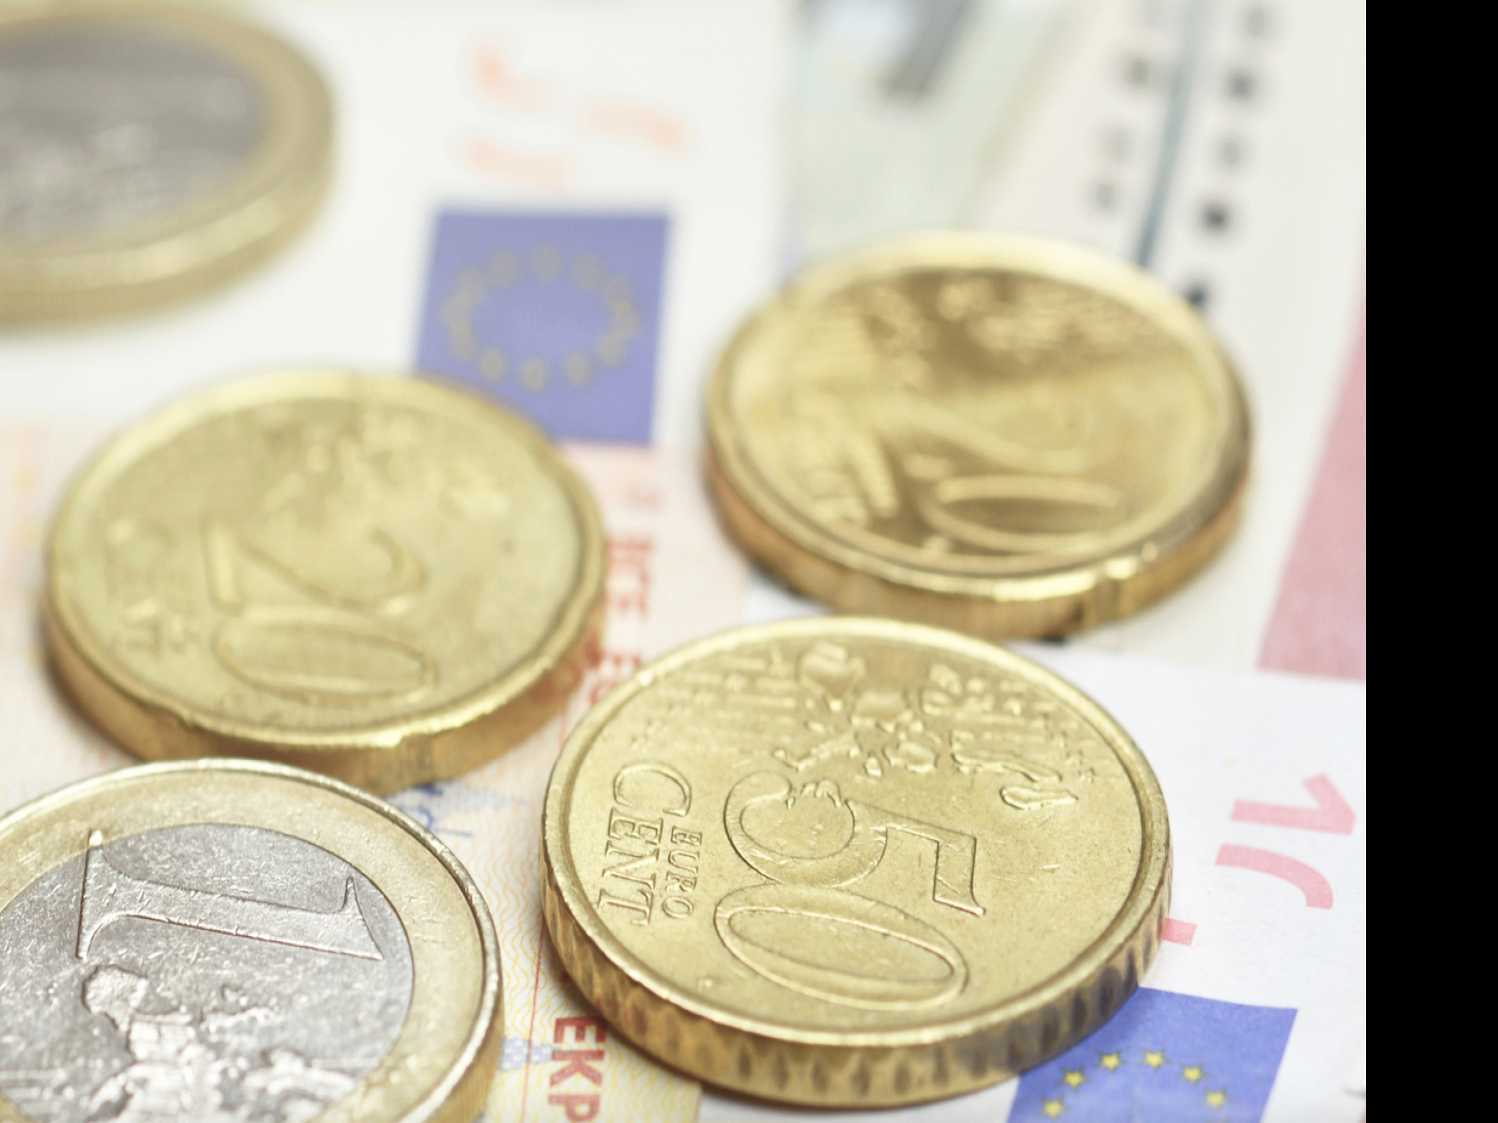 French on Mission to Woo Bankers from U.K. After Brexit